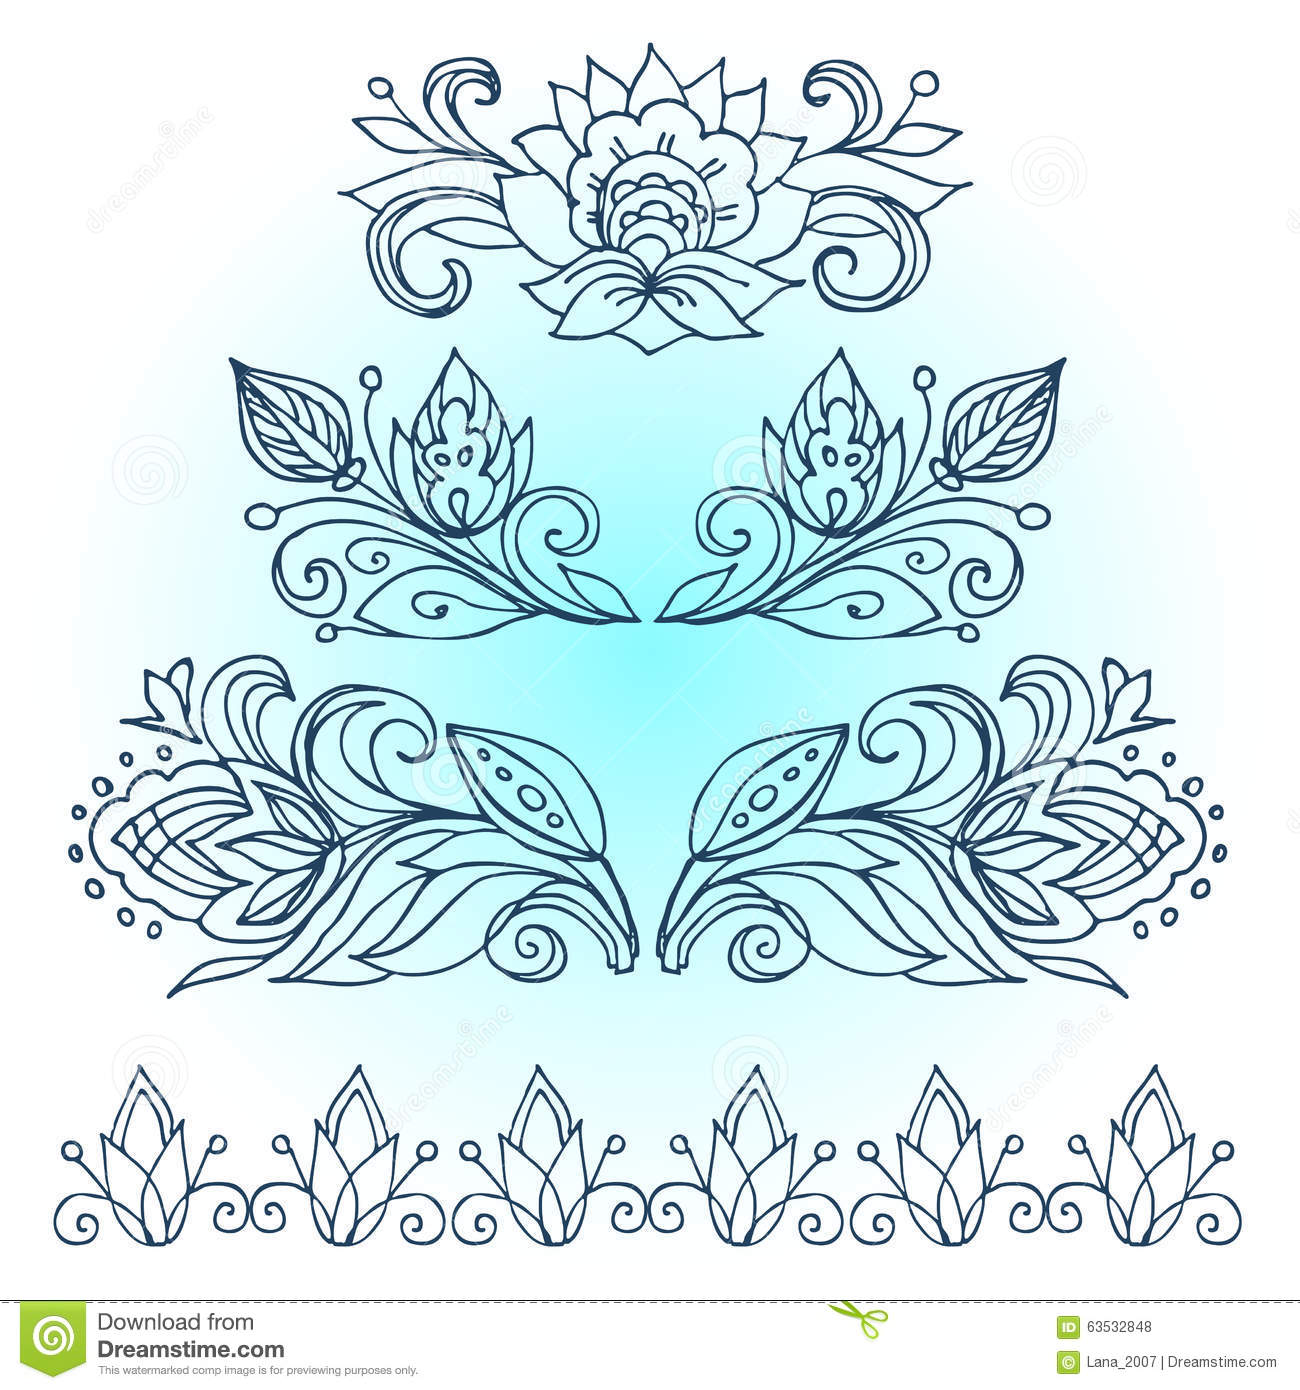 Christmas Flower Line Drawing : Vector border the artwork line drawings of floral ornament